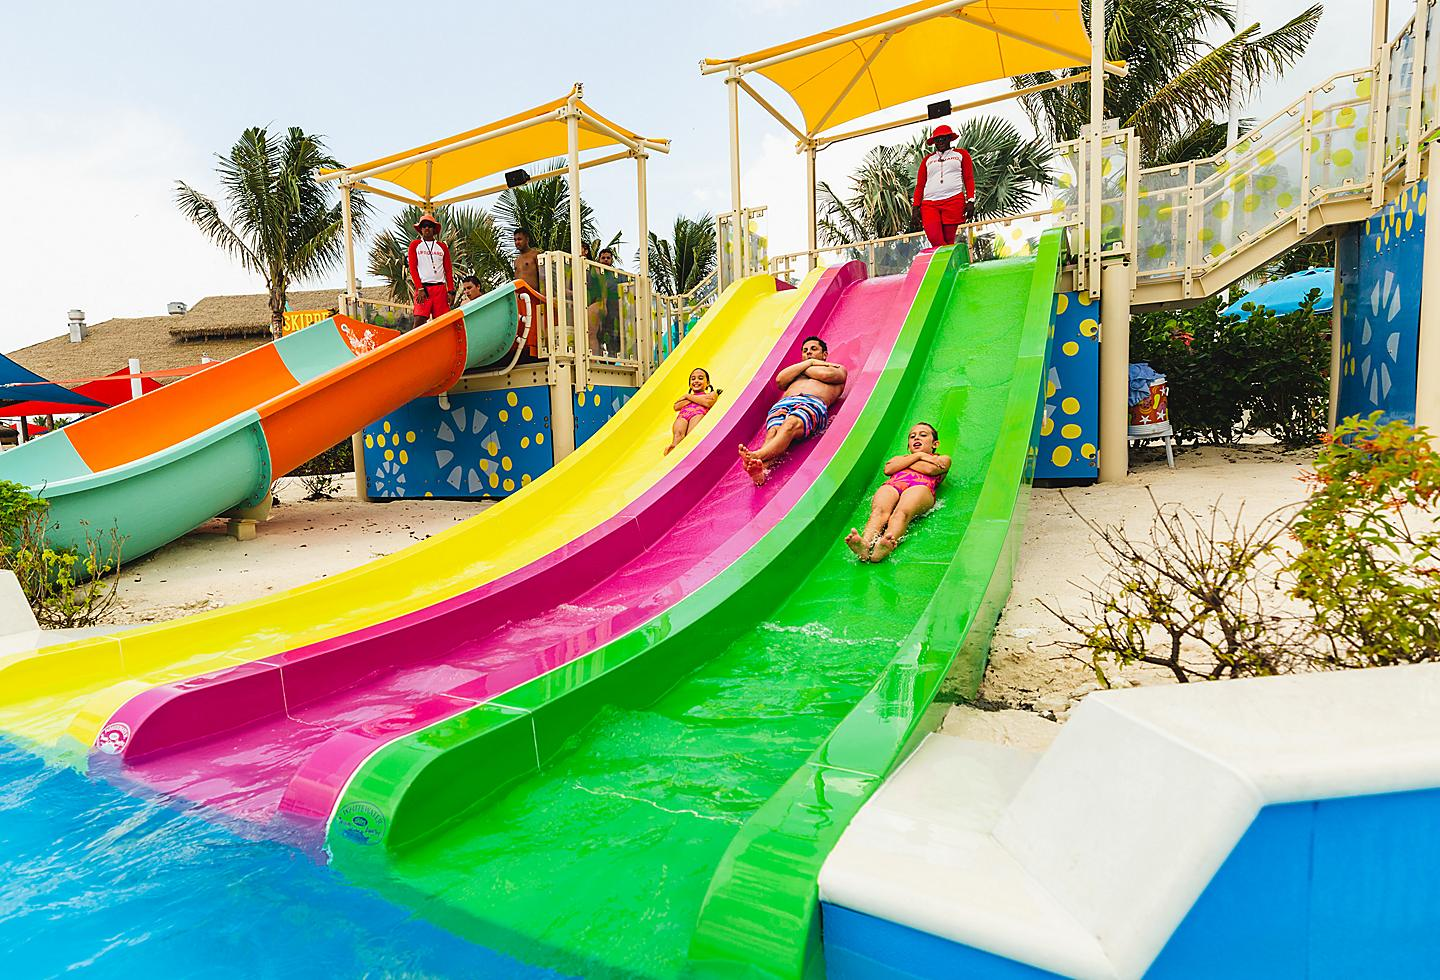 Racer Slides Splashaway at Perfect Day at CocoCay